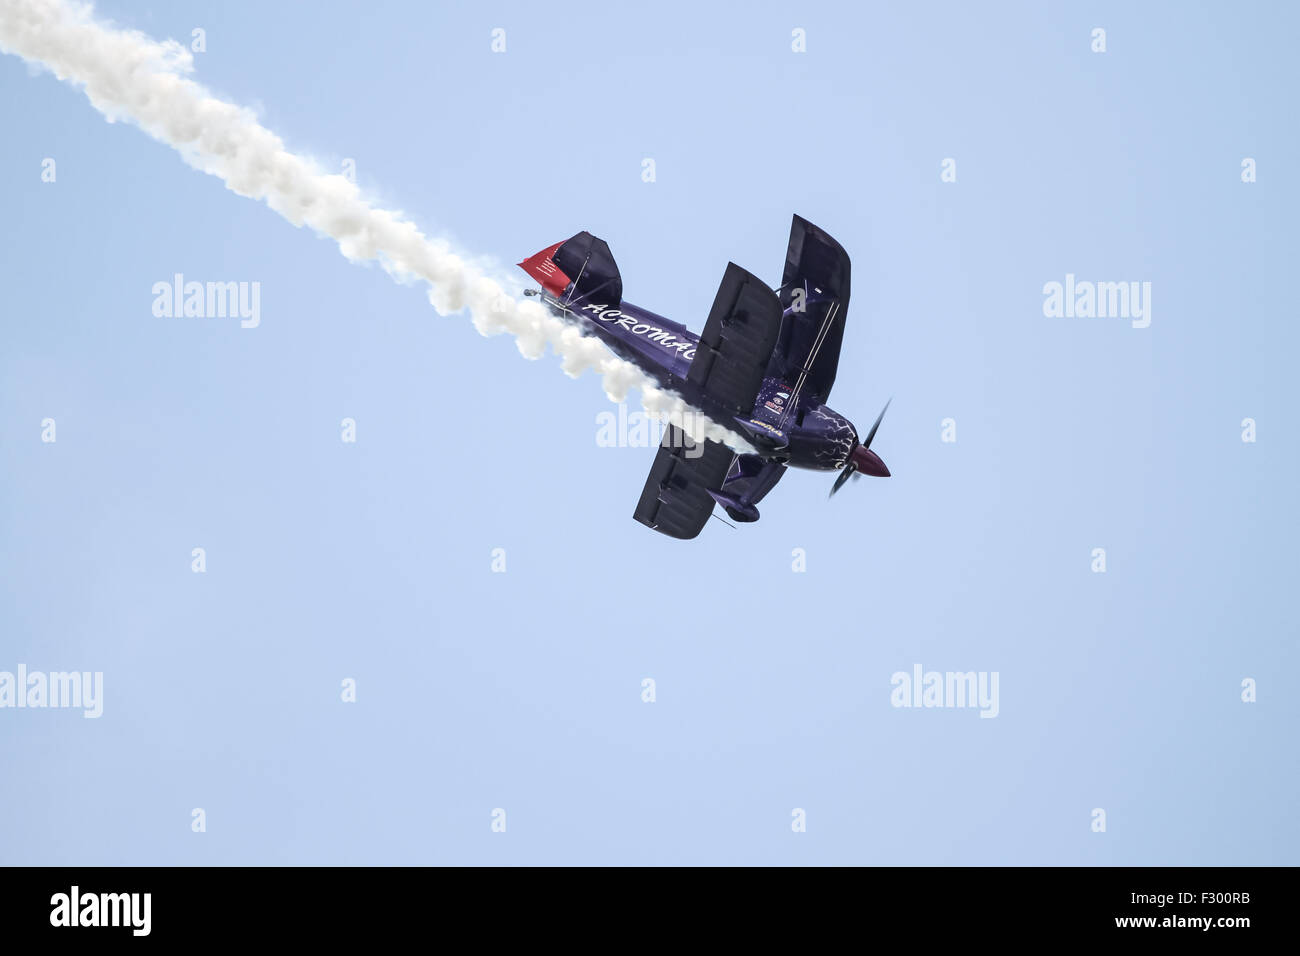 Ali Ismet Ozturk piloting his special biplane called Purple Violet at TATCA Airfest 2015 - Stock Image